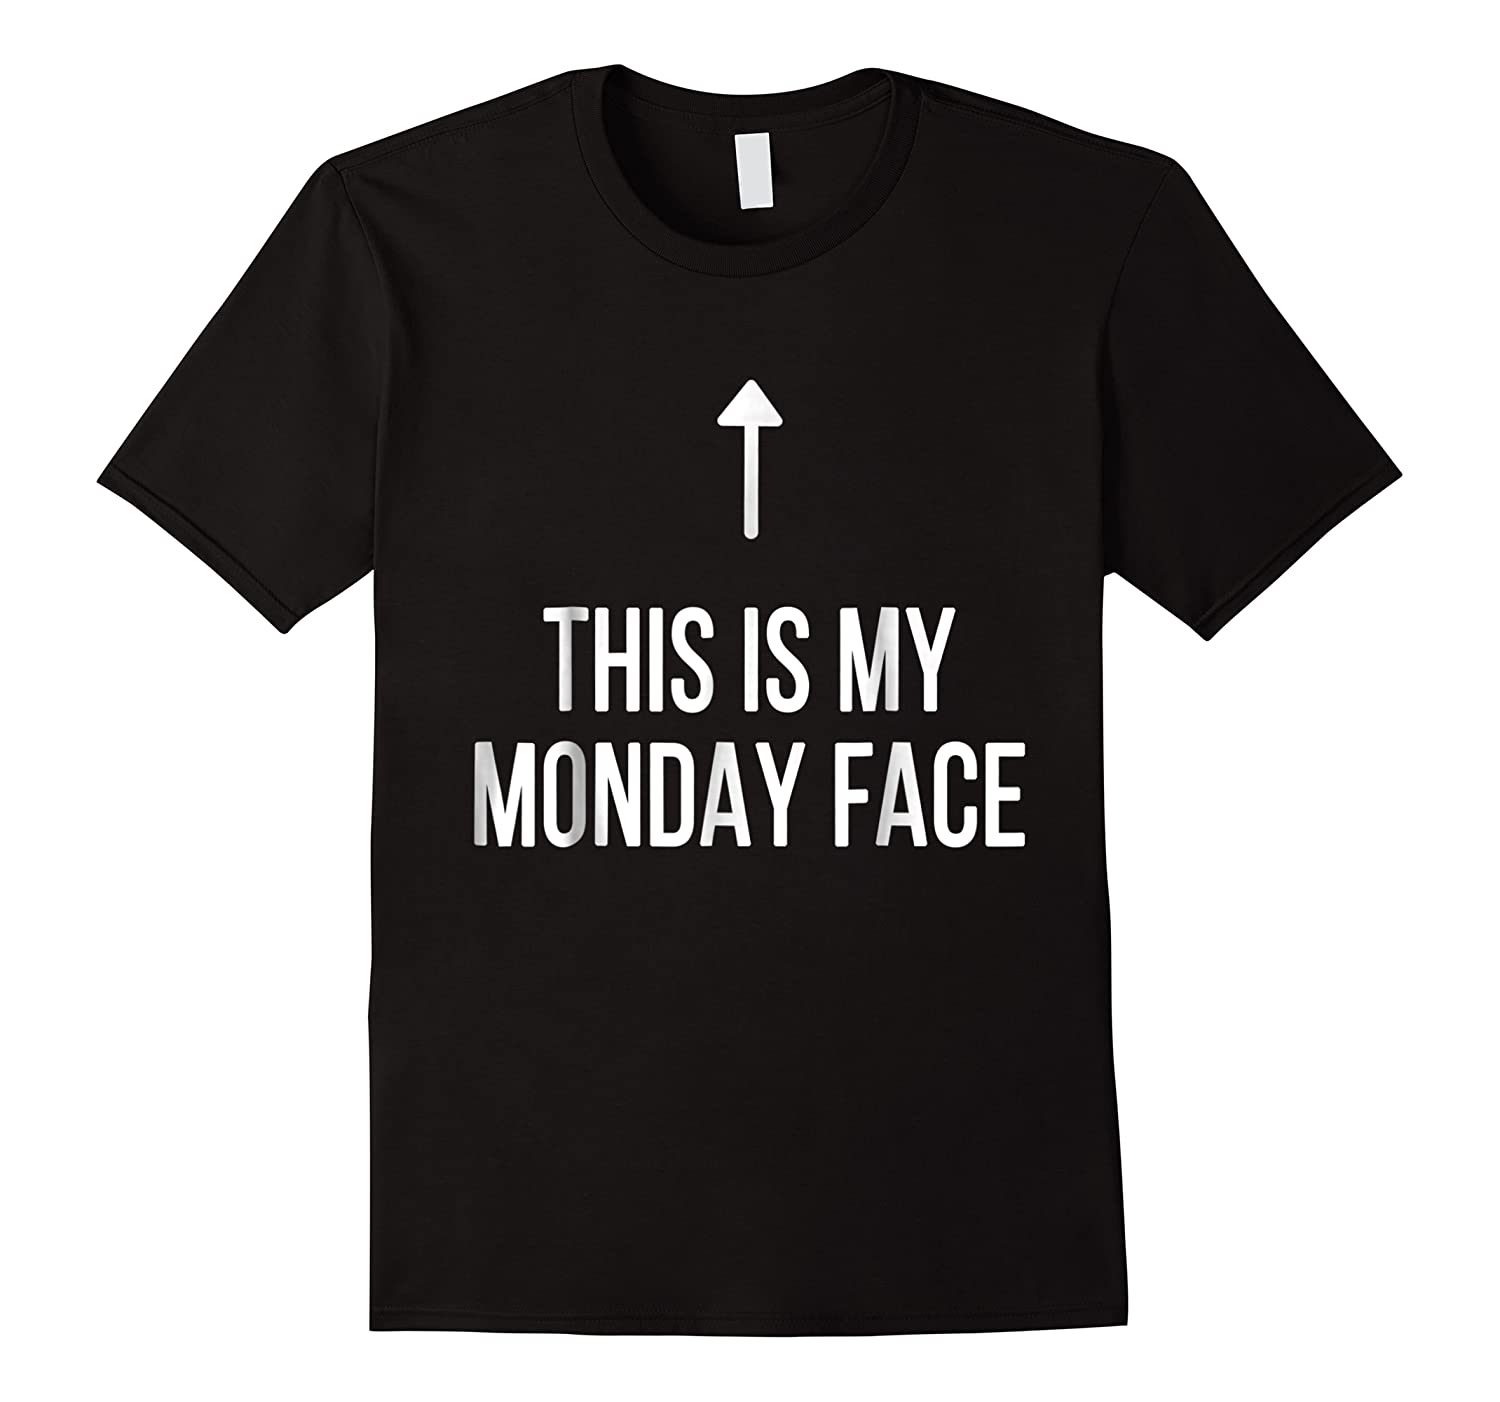 This Is My Monday Face - Funny Monday Shirt